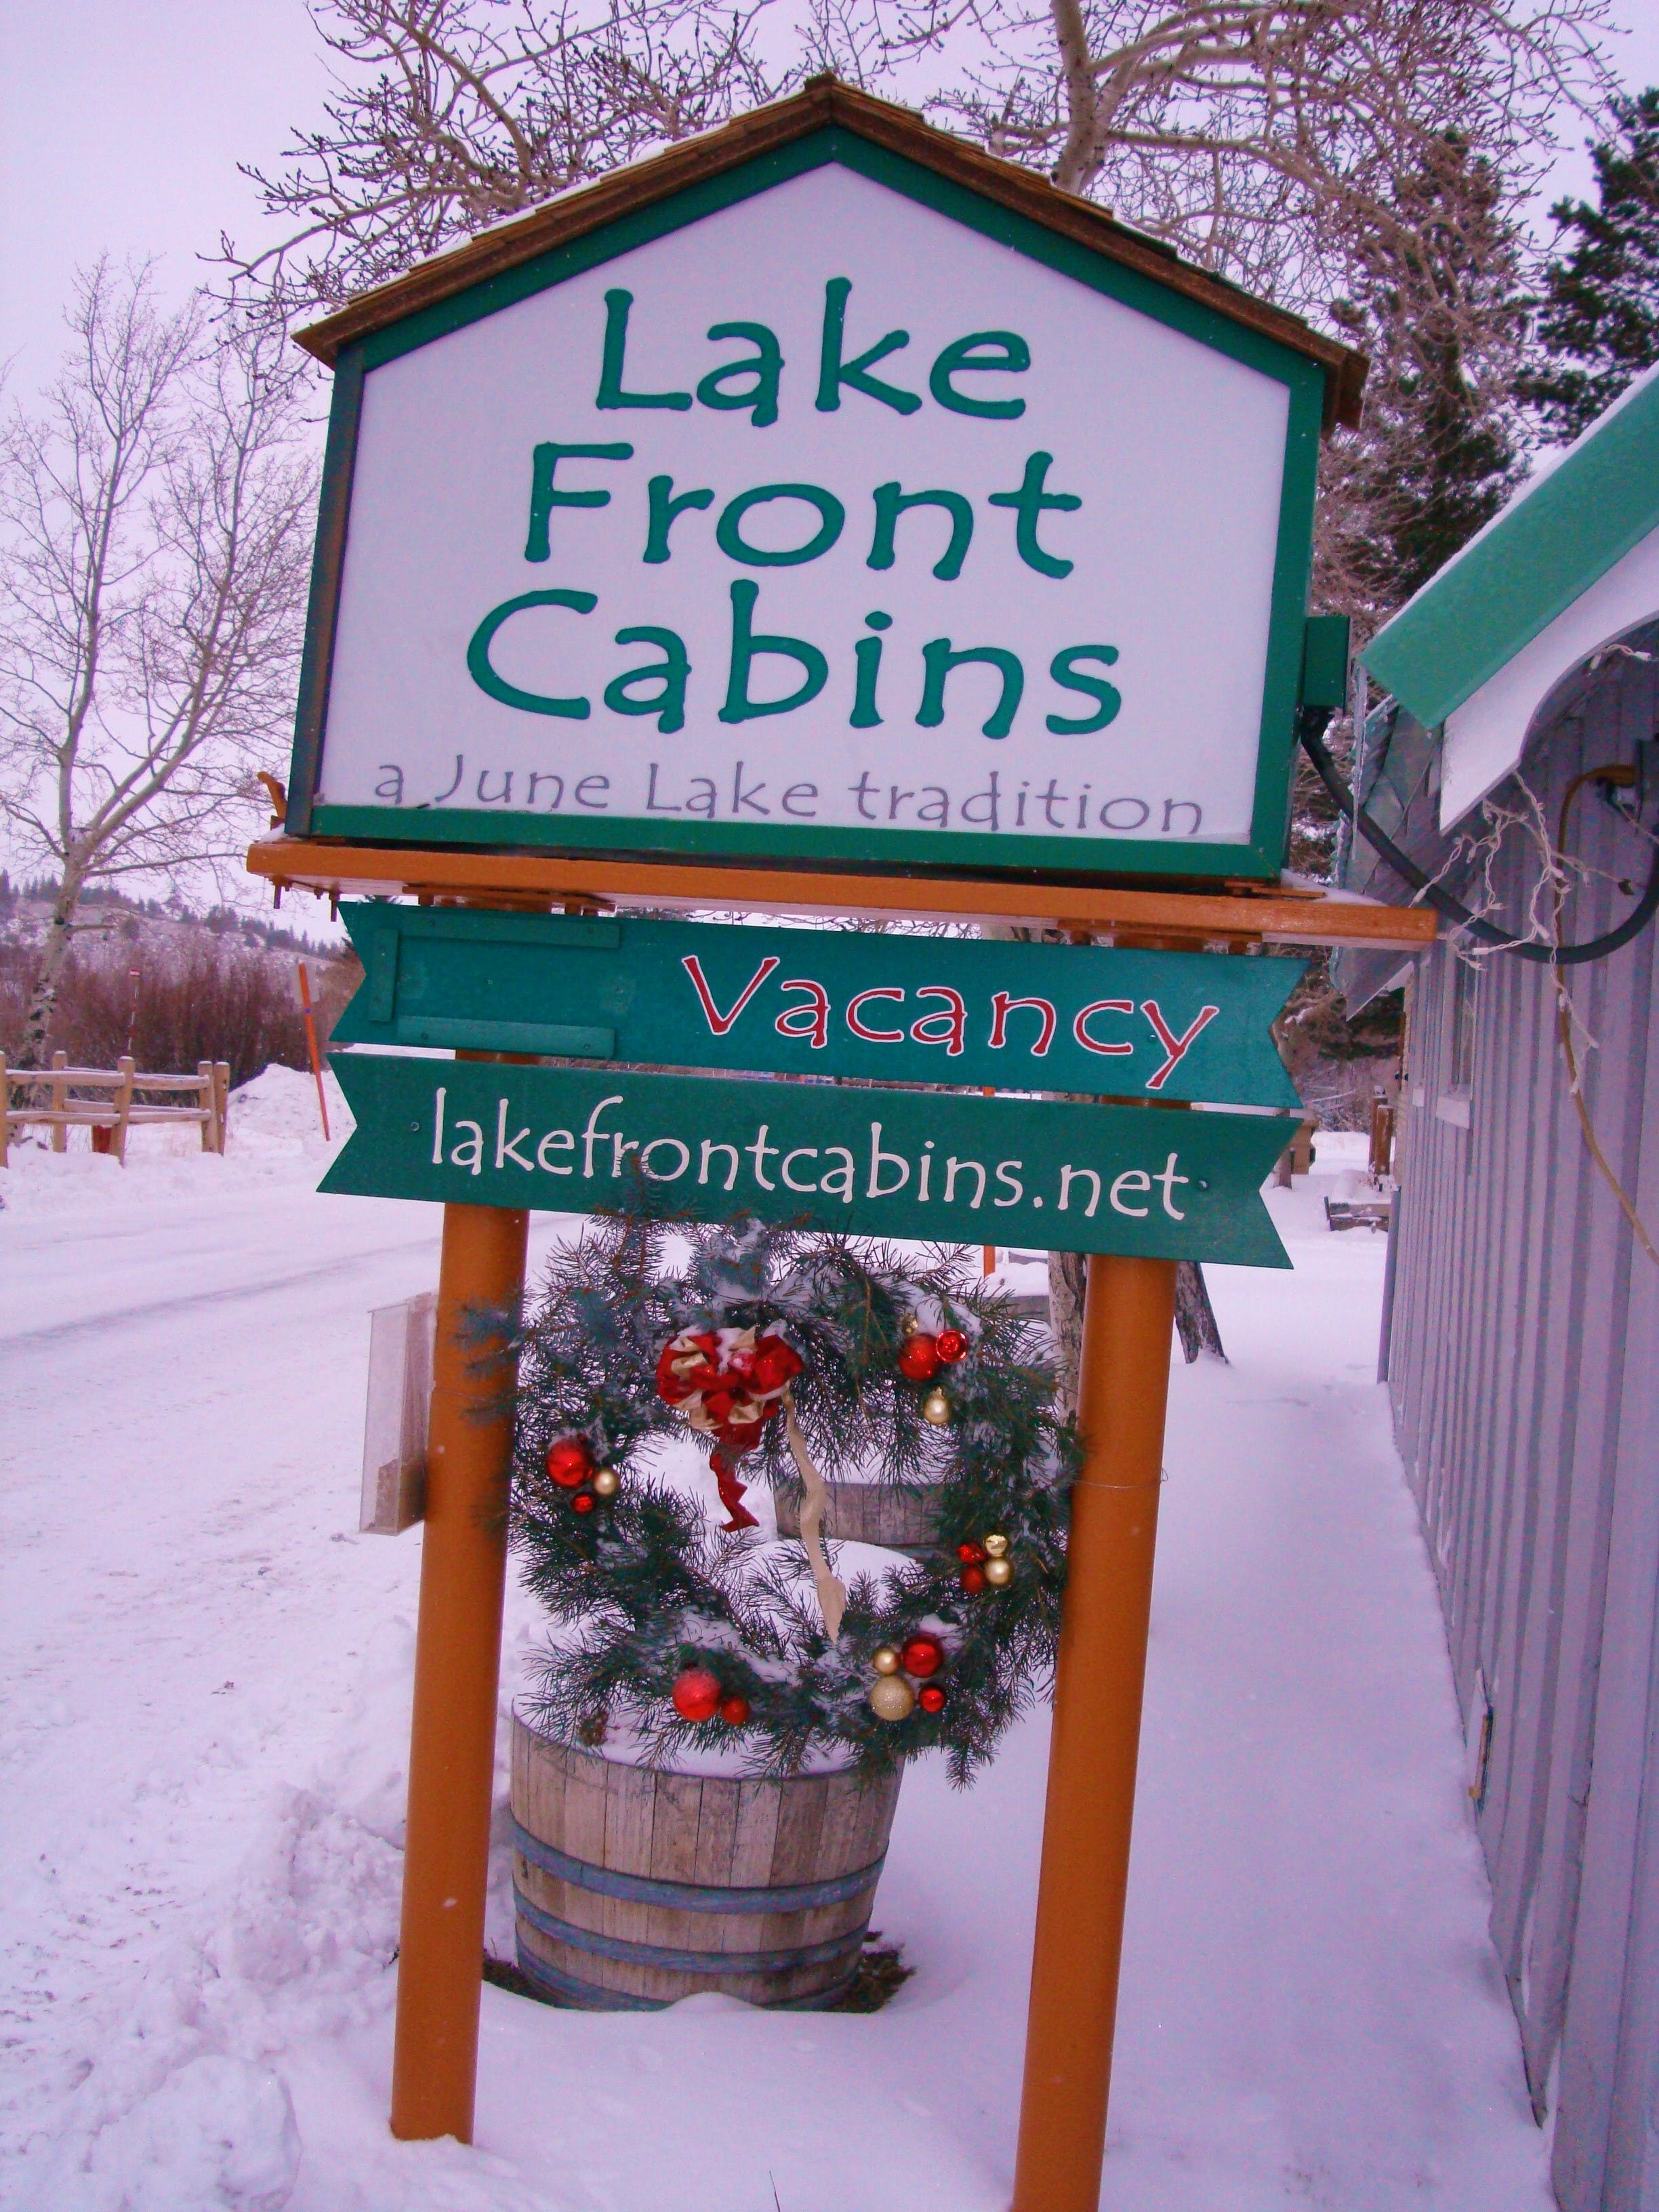 Entrance sign to Lake Front Cabins in the winter.